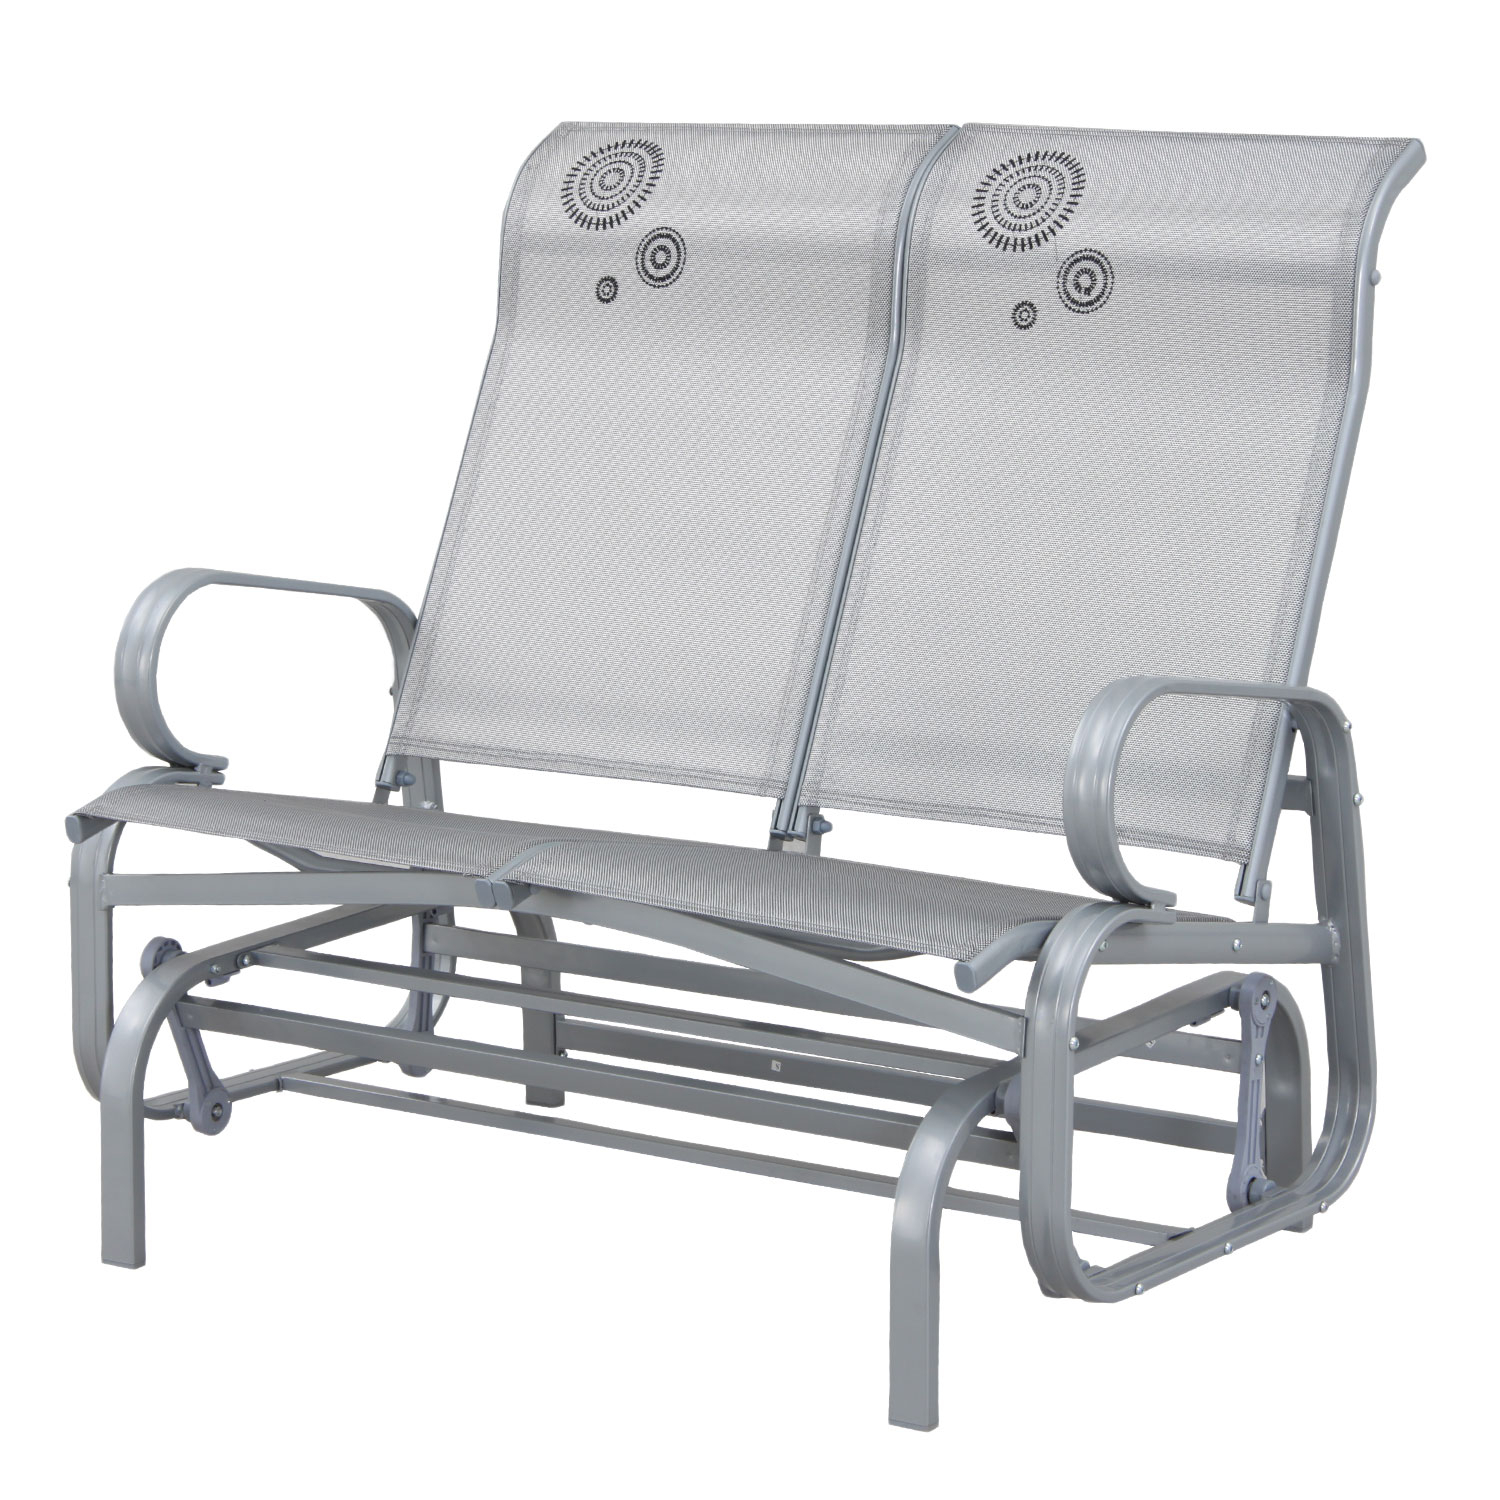 Suntime Havana Silver Twin Seat Outdoor Rocker Glider Within Twin Seat Glider Benches (View 6 of 25)